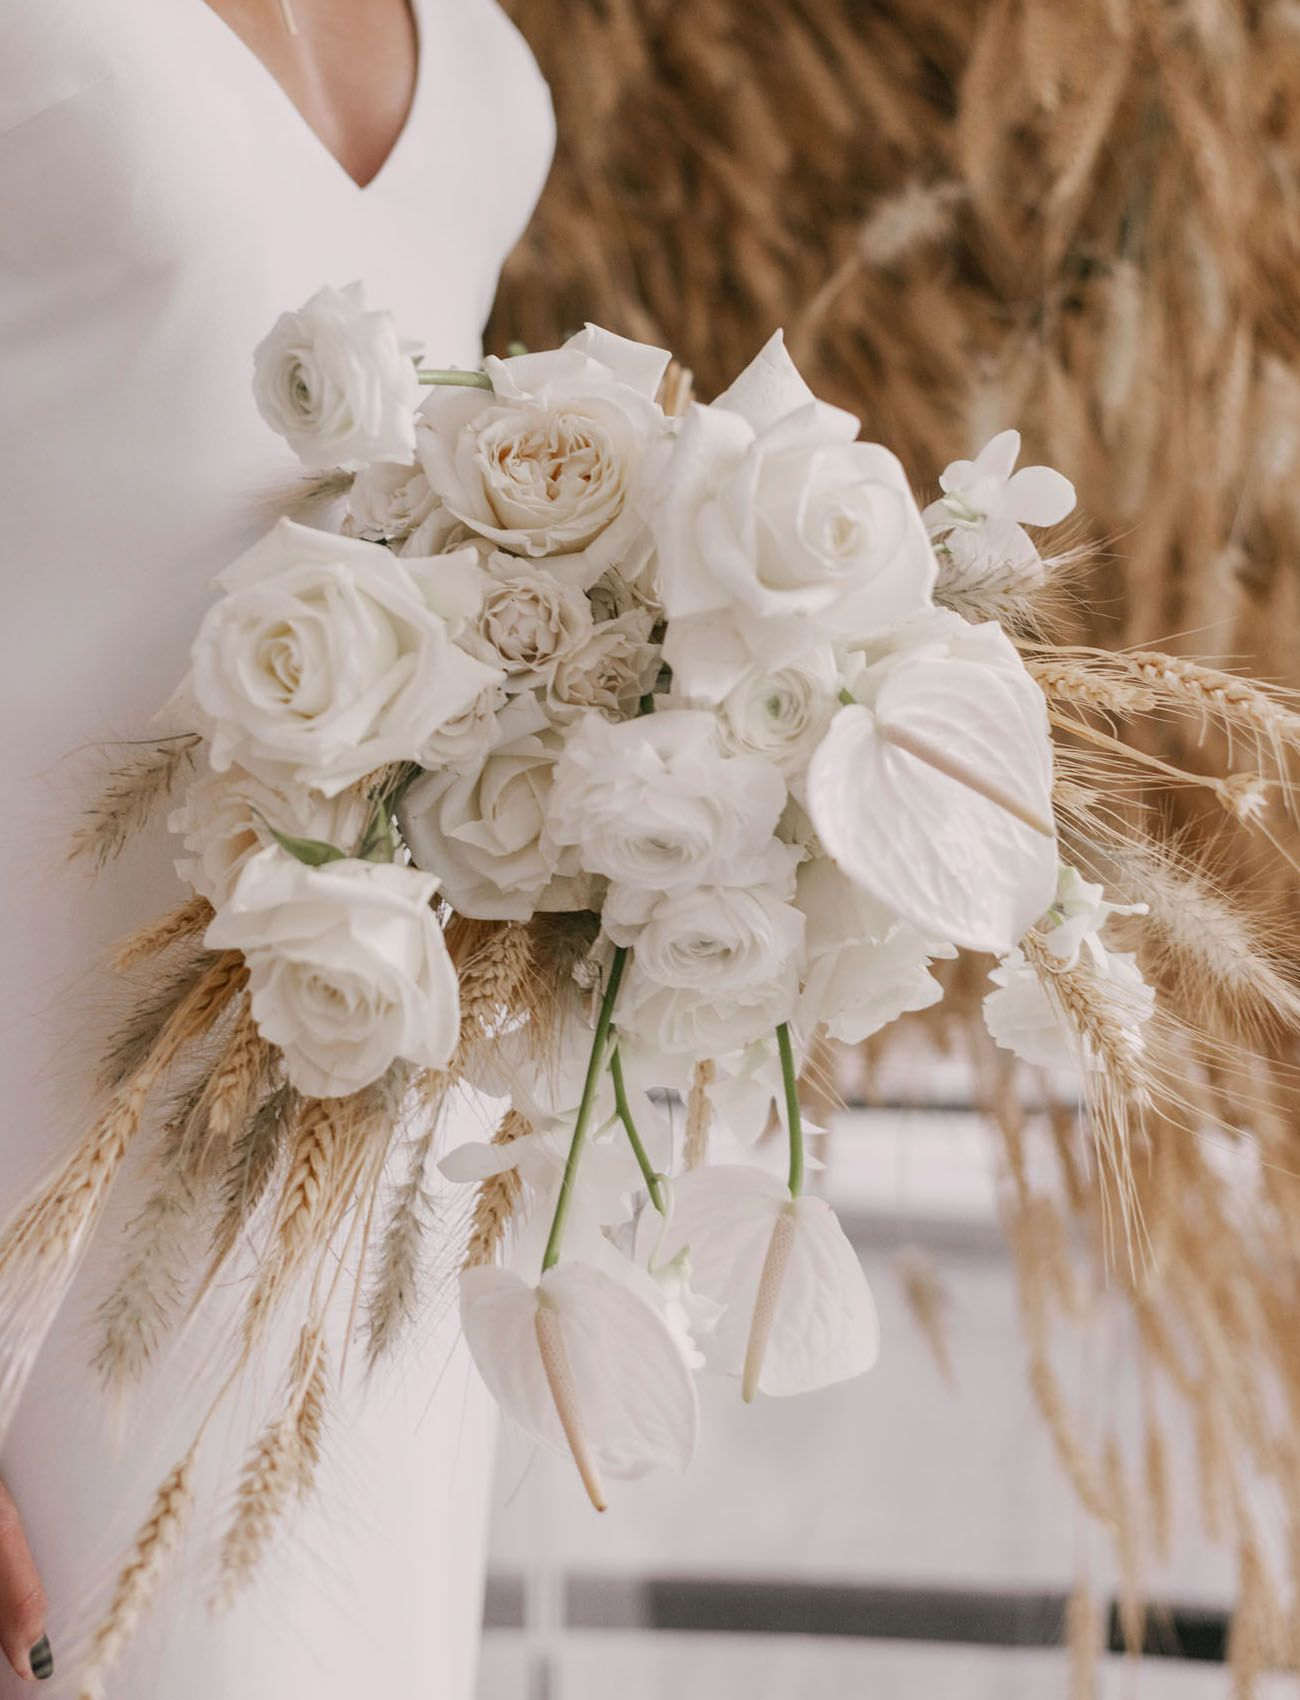 Bouquet Sposa Moderni.We Re All About The Modern Monochrome In This Wintry Wedding